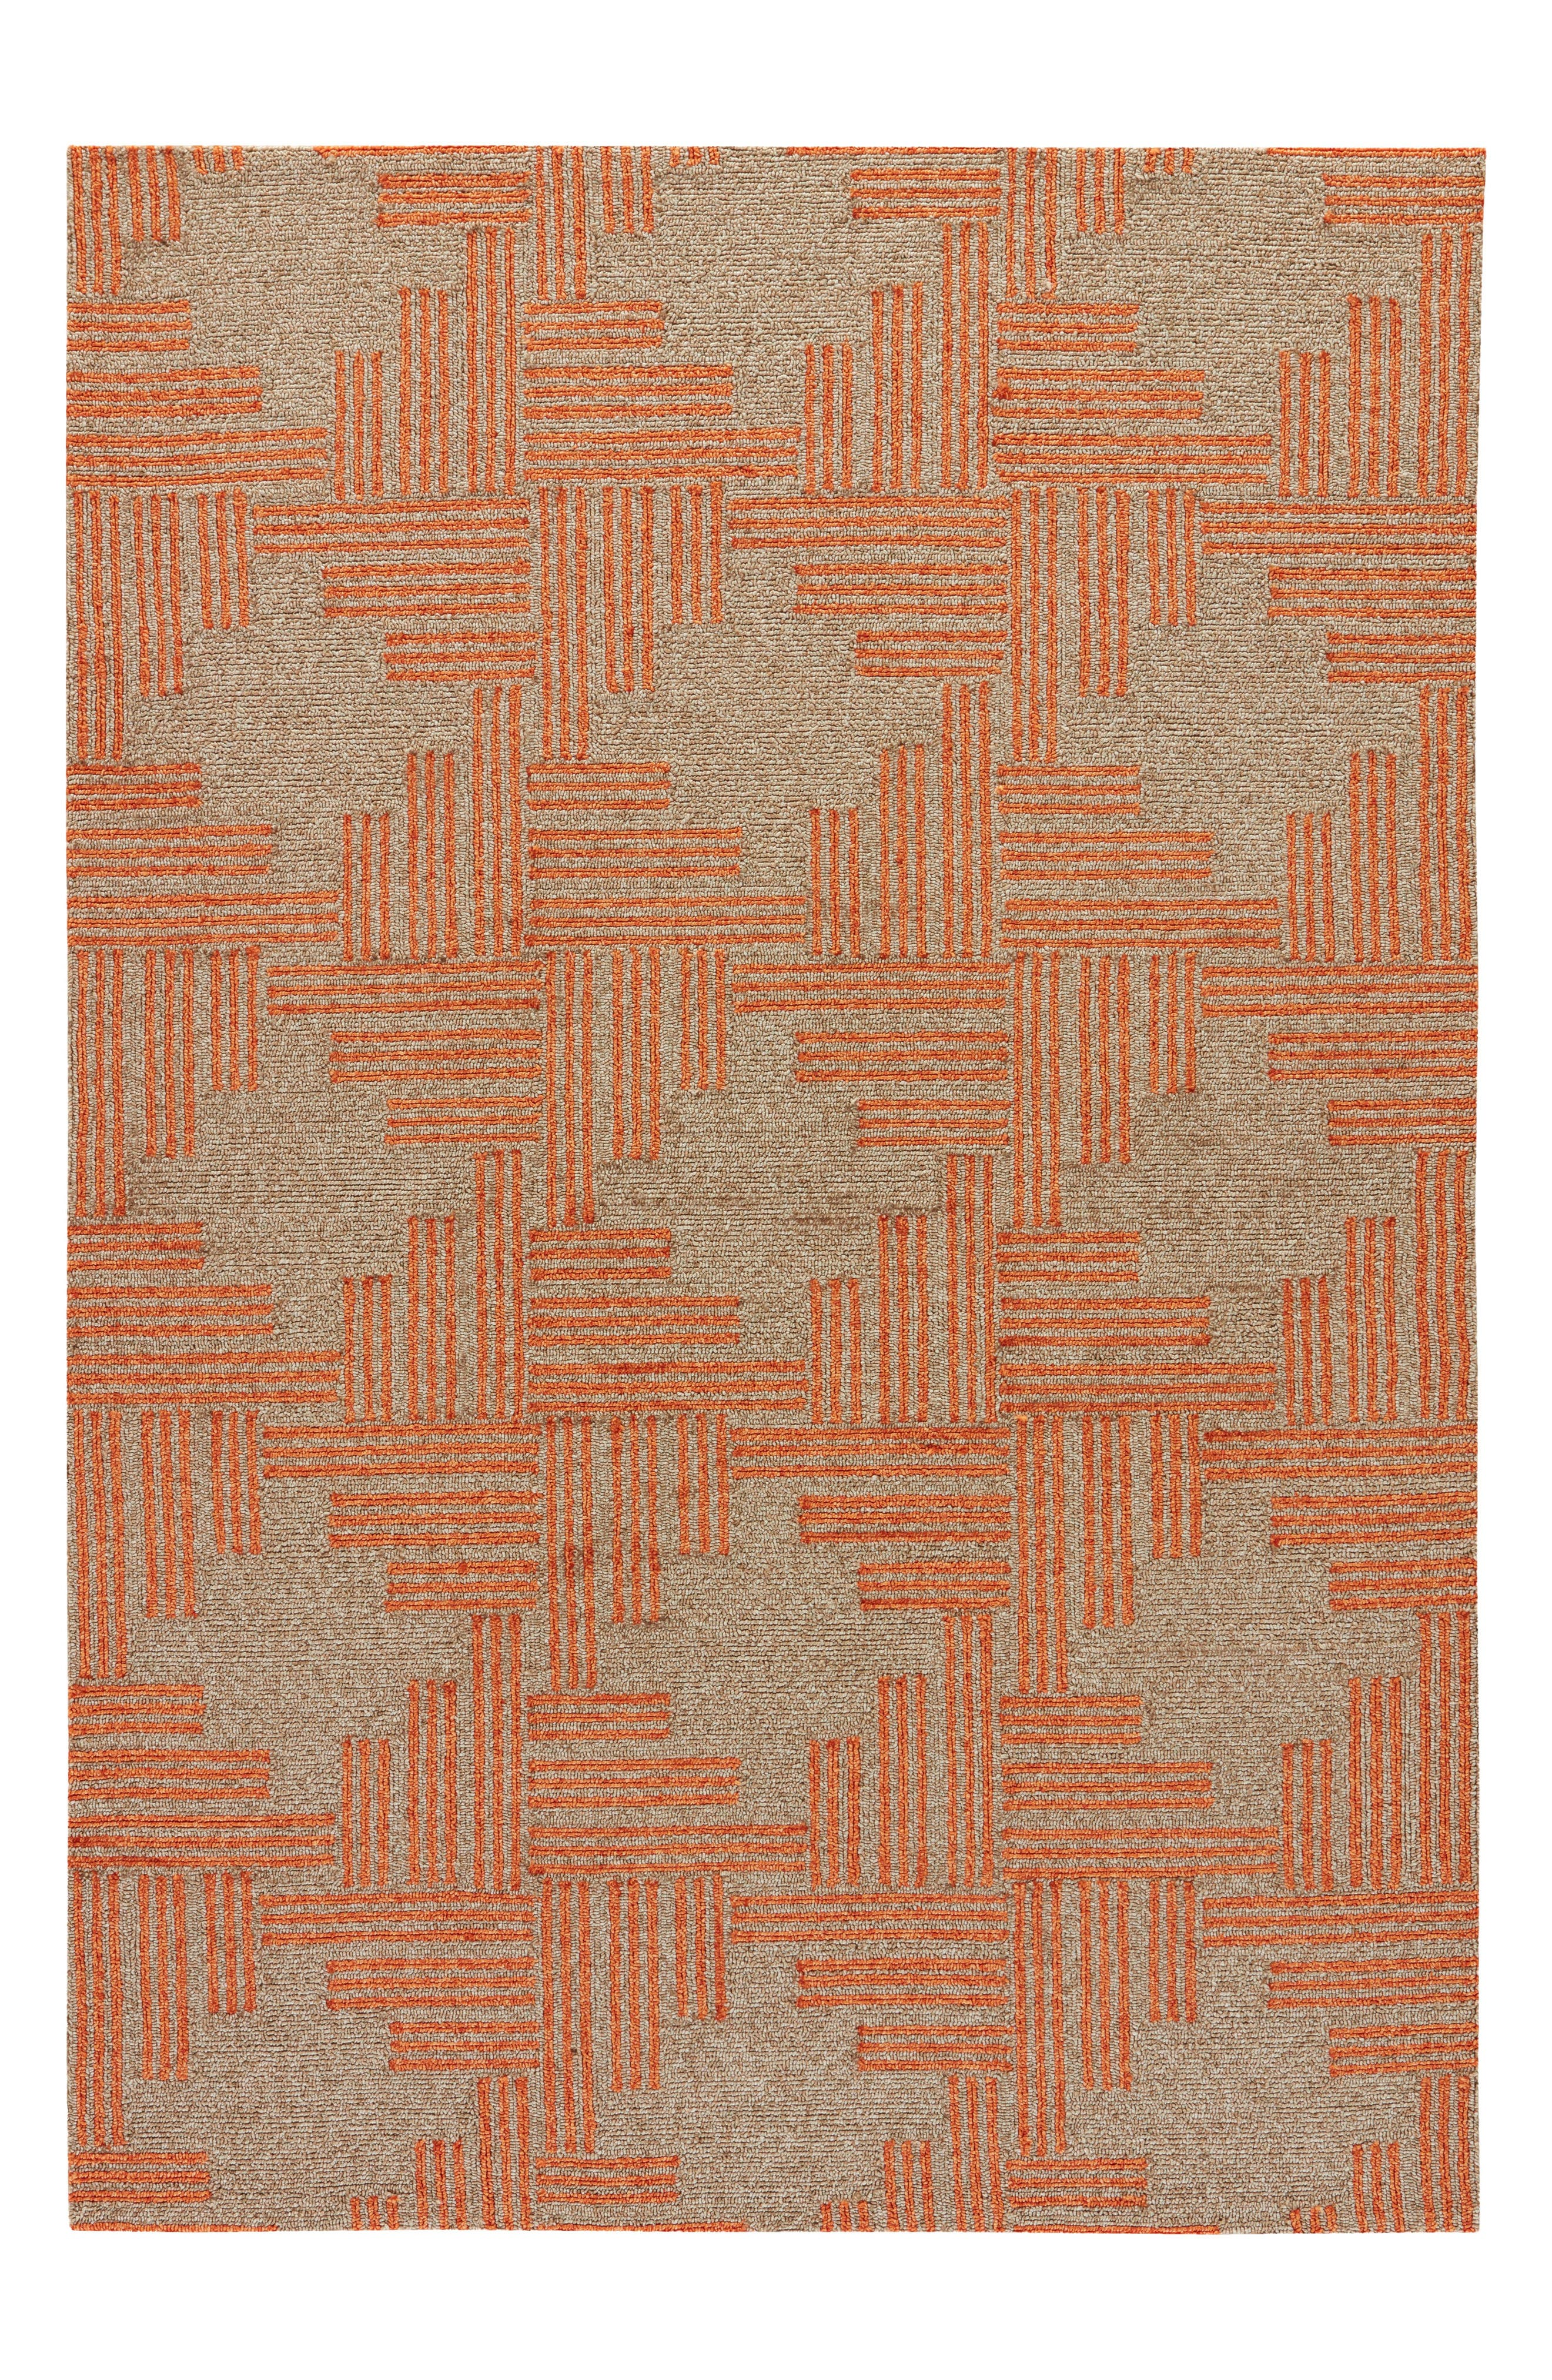 Contemporary Geo Cross Rug,                             Alternate thumbnail 2, color,                             250